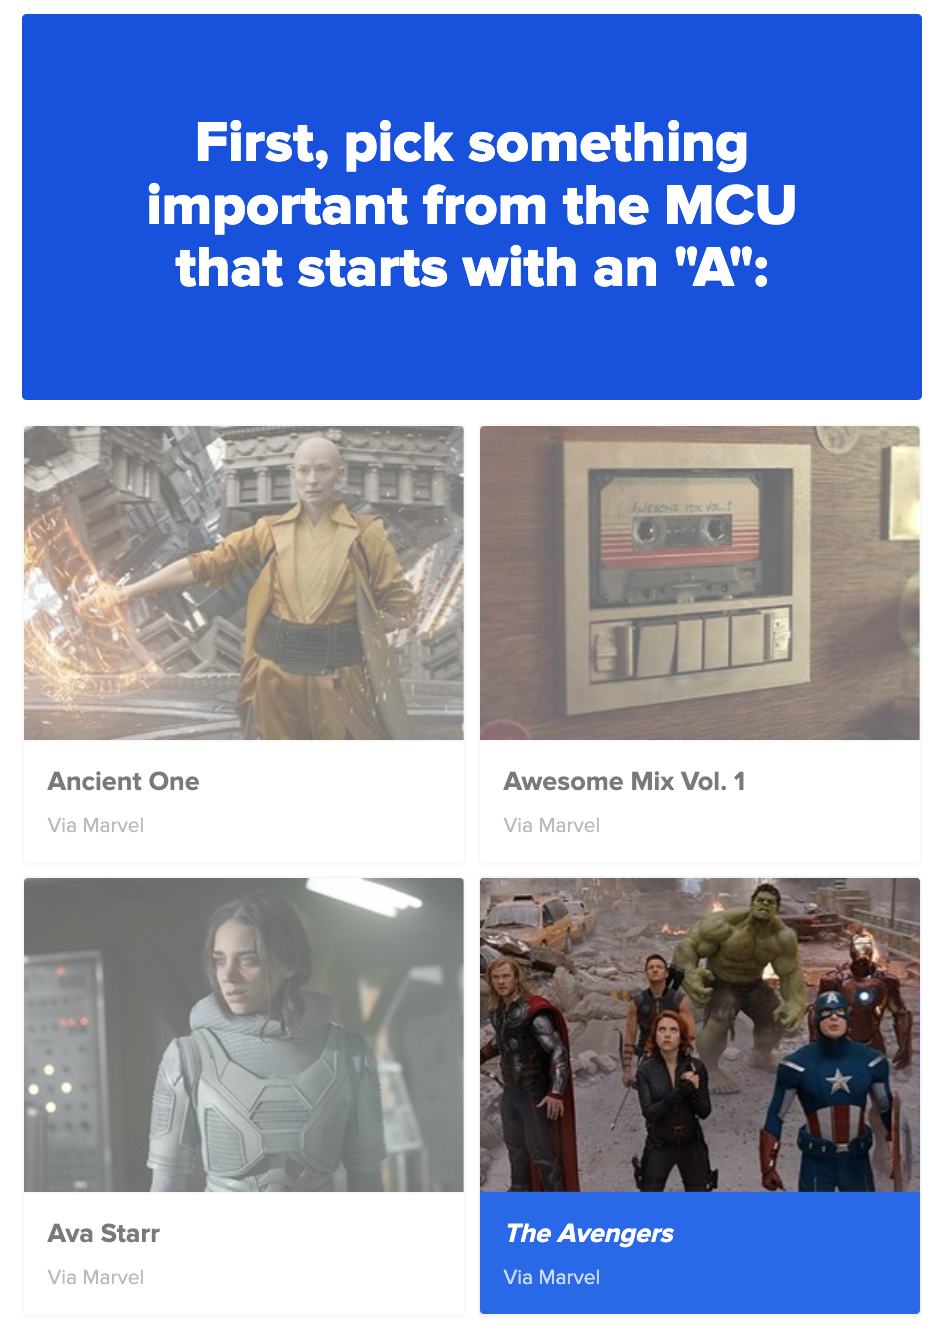 """The sample question """"Pick something in the MCU starting with A"""" with the options of ancient one, awesome mix vol 1, ava starr, and the avengers"""